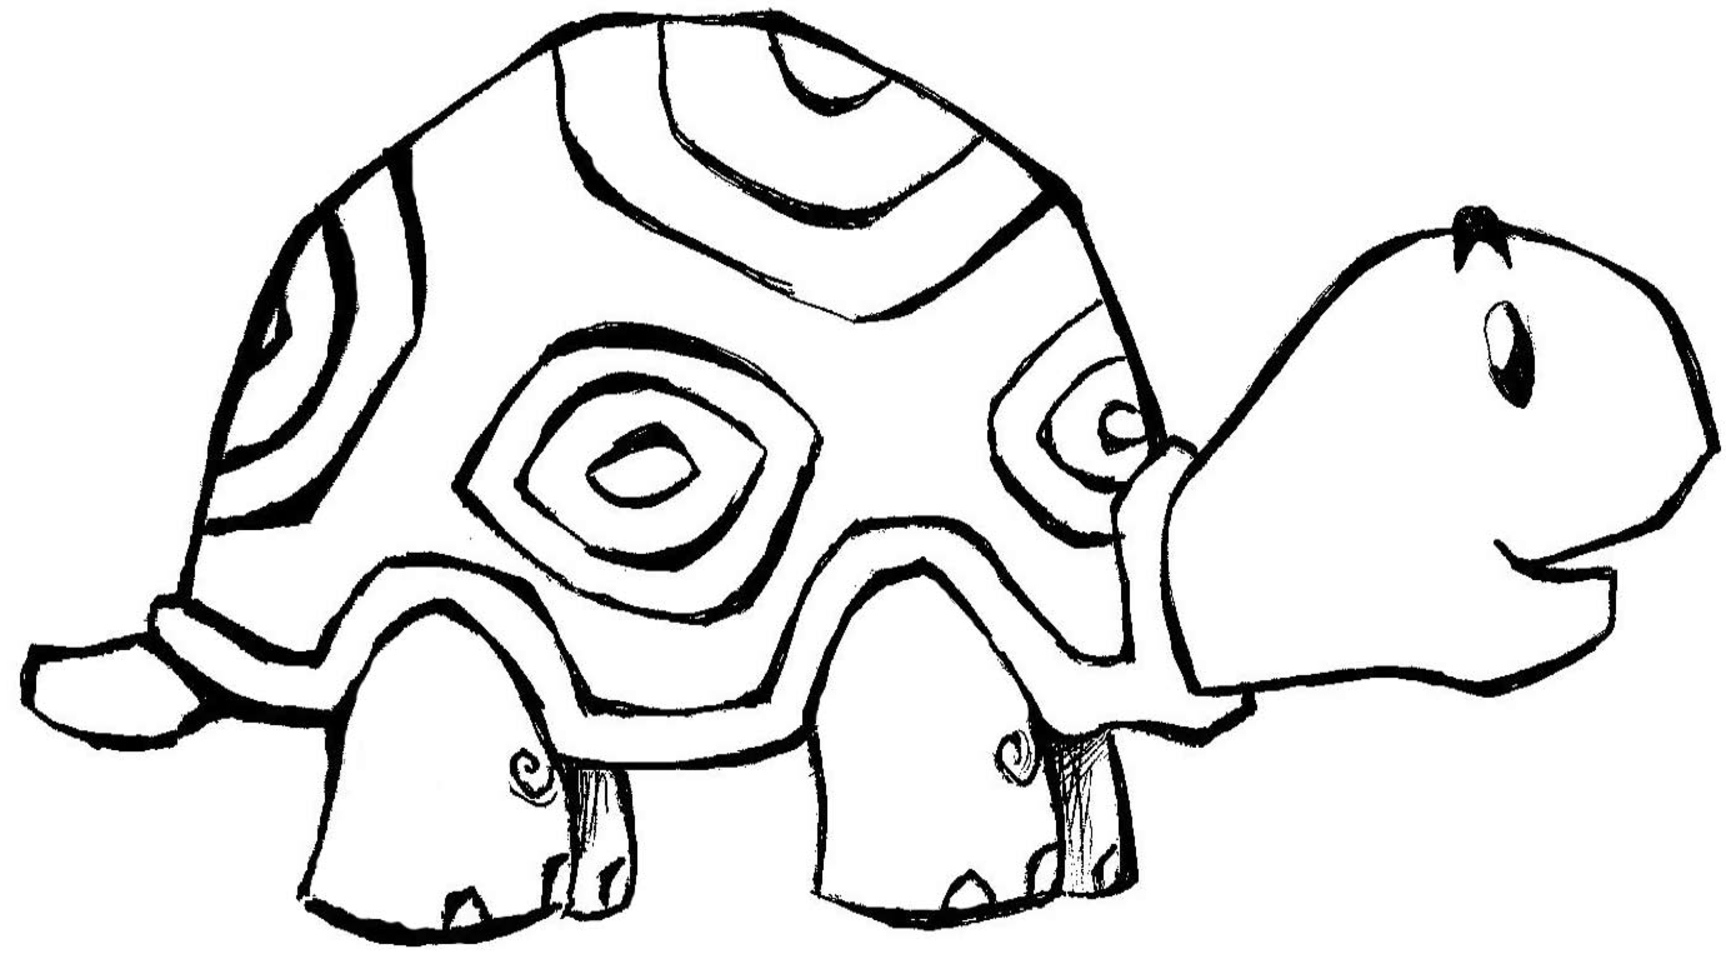 Best Free Coloring Page 44 On Coloring Pages Online With Free